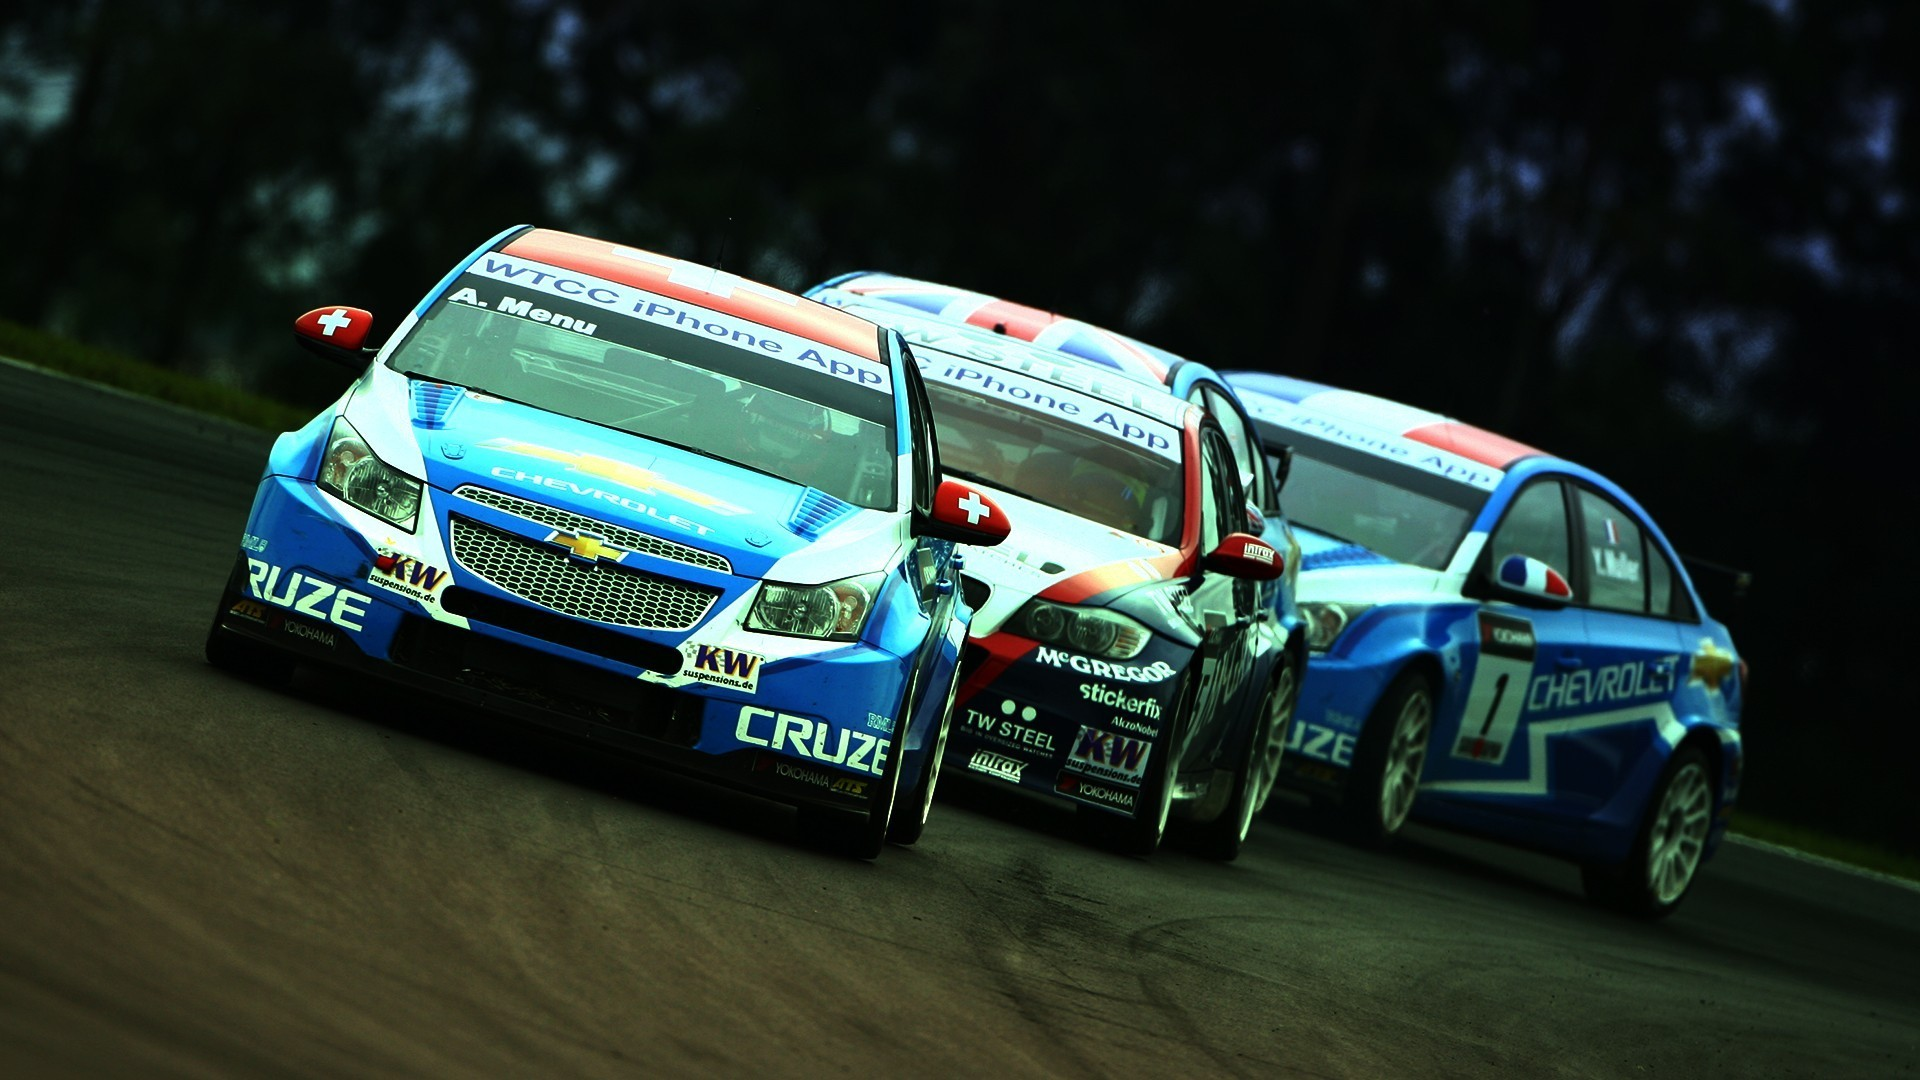 1920x1080 - WTCC Racing Wallpapers 1